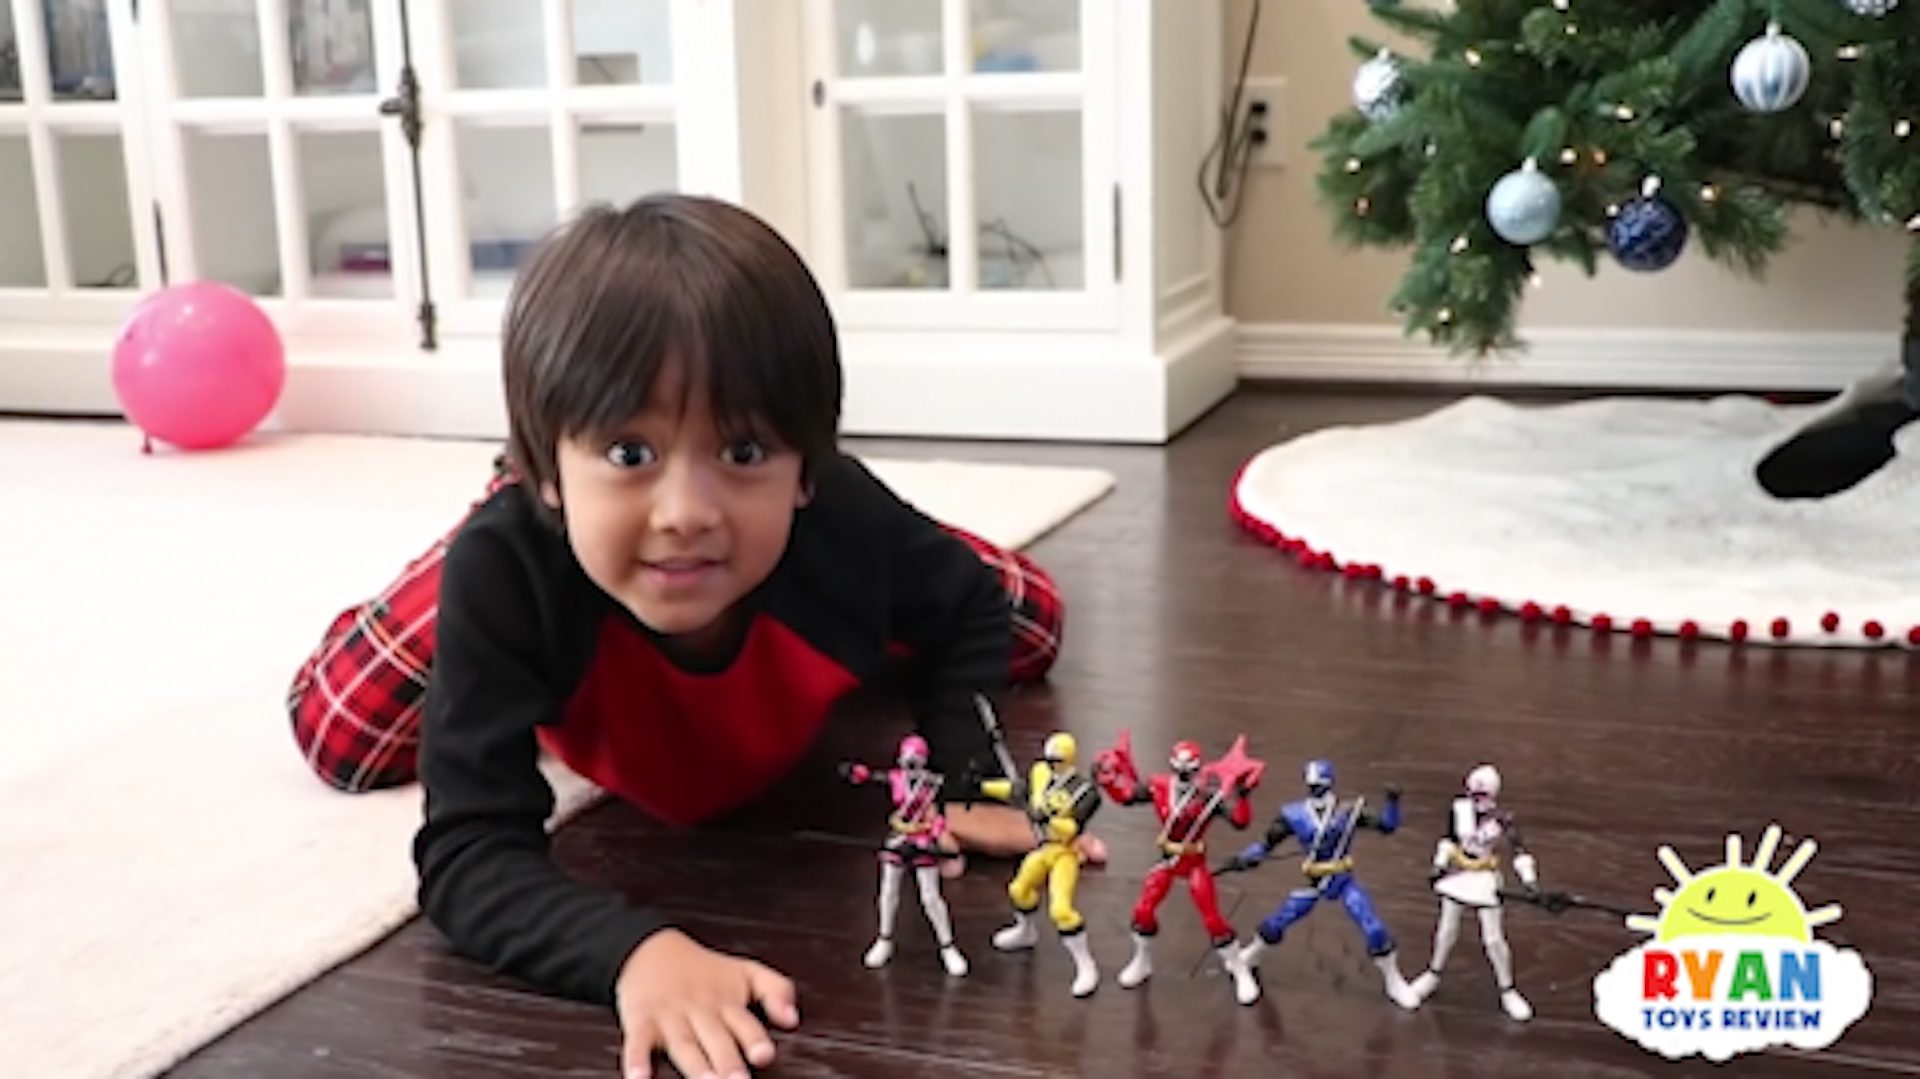 6 Year Old Made 11 Million In One Year Reviewing Toys On You Tube